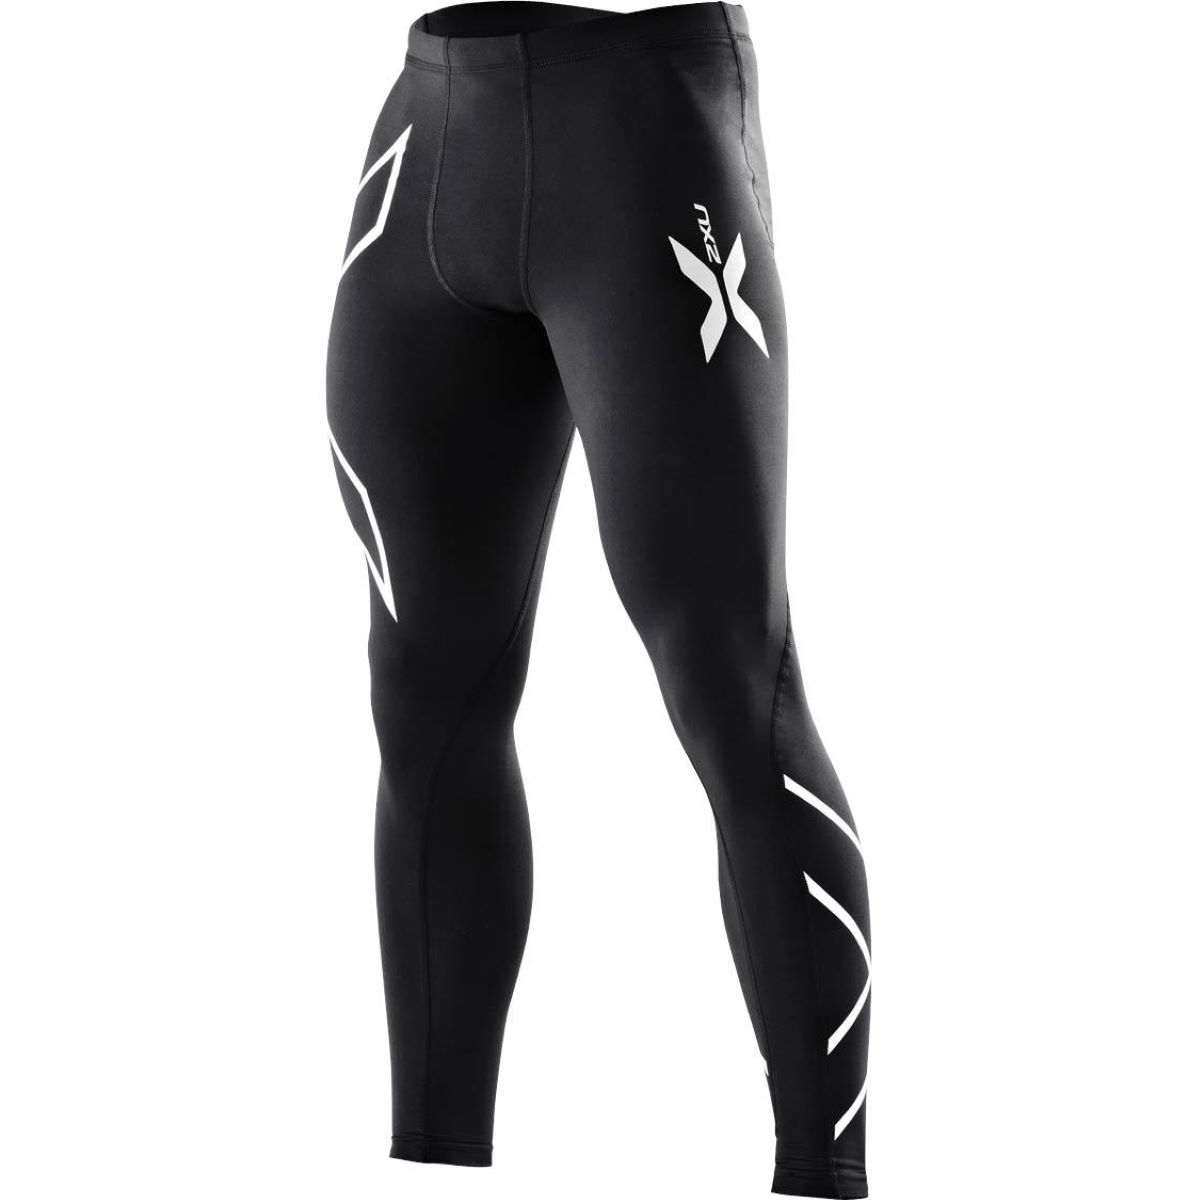 Collant 2XU Compression - XS Black/Silver Logo Sous-vêtements compression